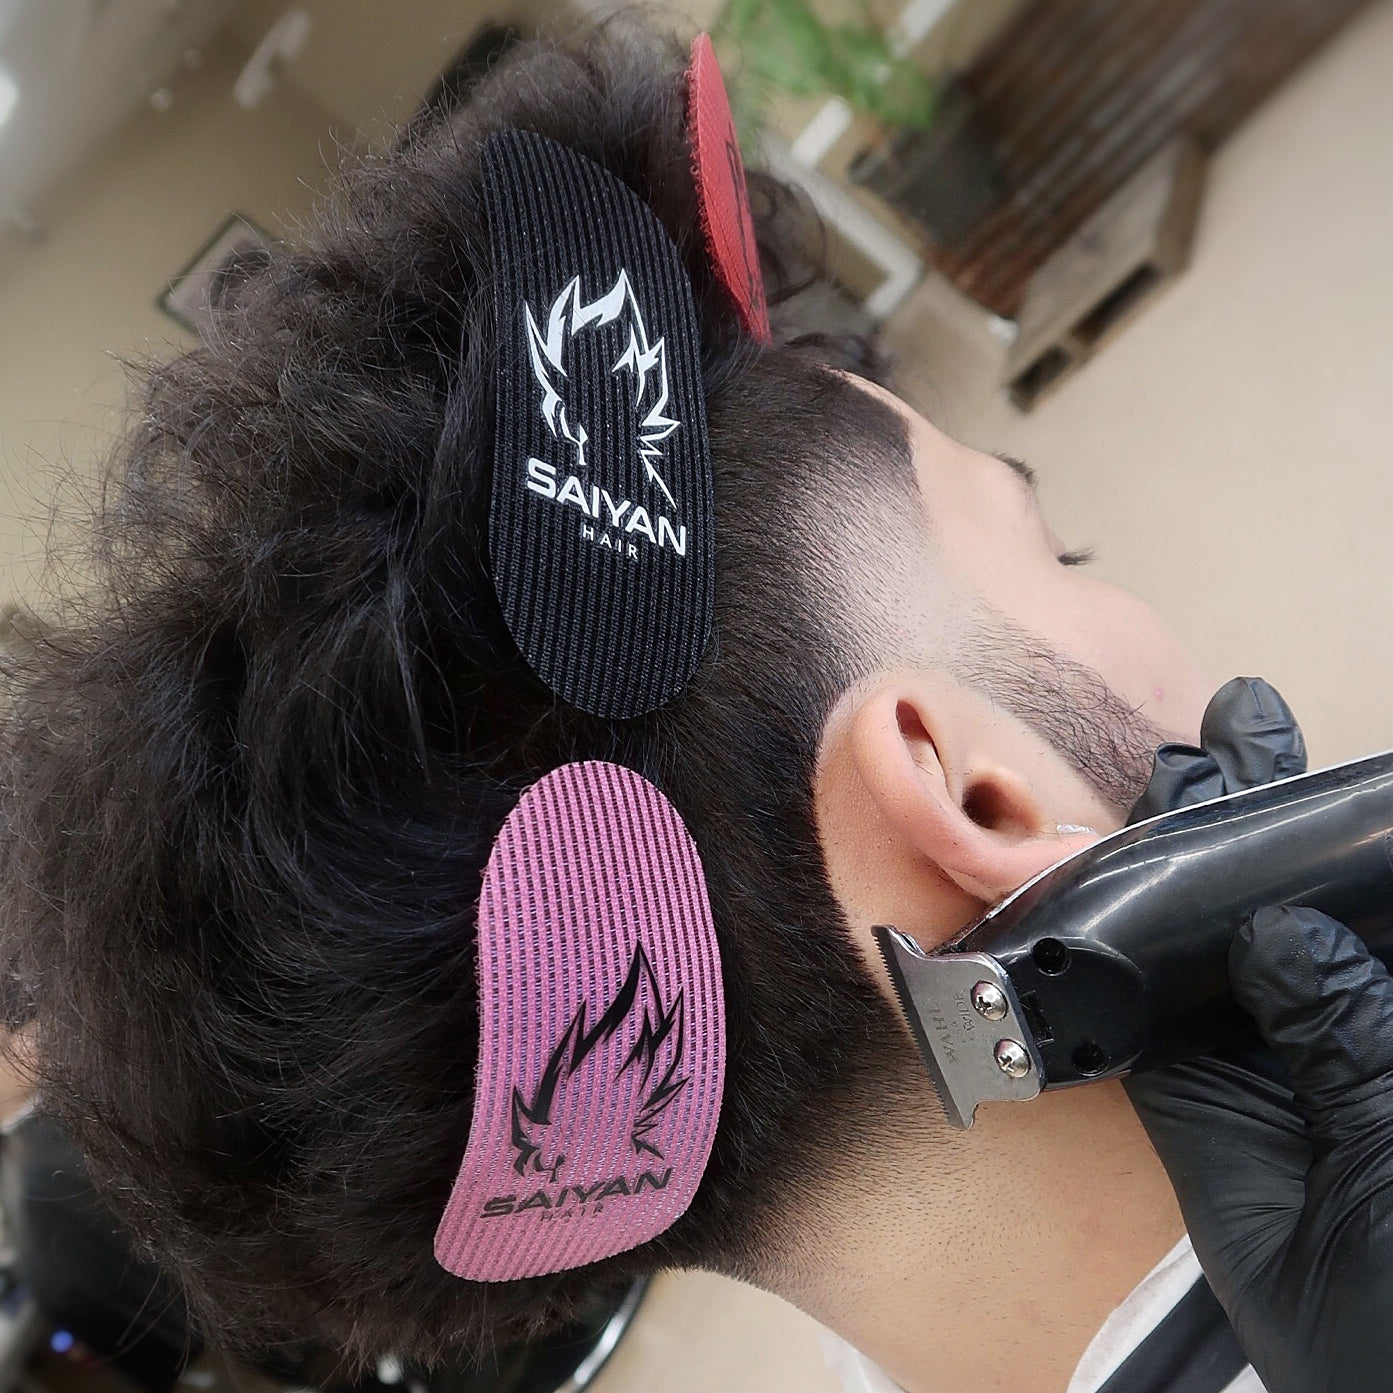 SAIYAN SET OF HAIR GRIPPERS W/ FADE BRUSH INCLUDED!